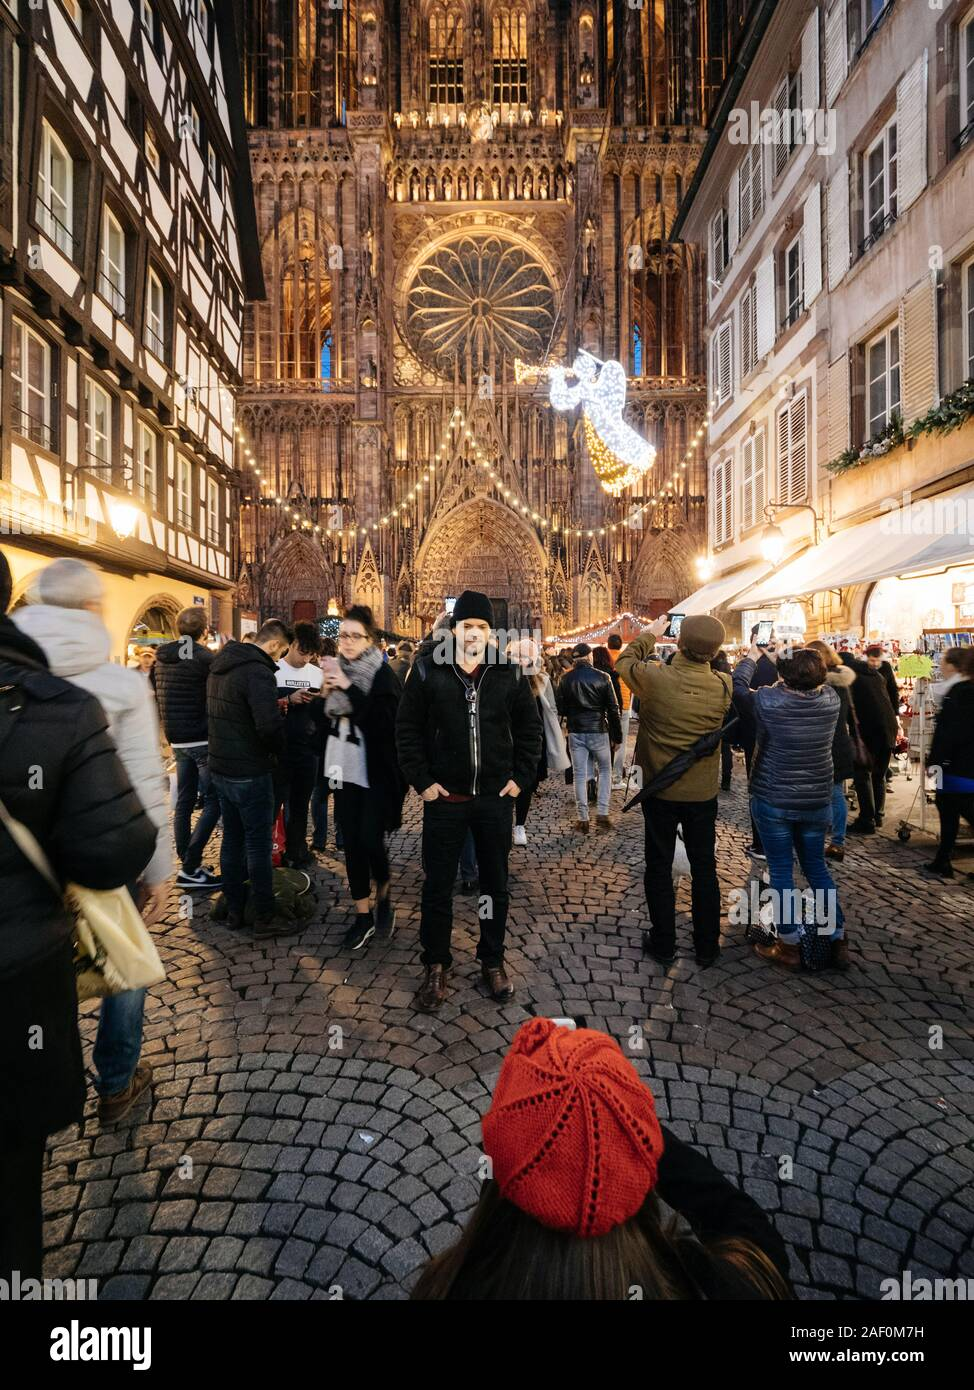 Strasbourg France Dec 24 2018 Wide Angle Lens Over Rear View Of Woman Wearing Red Beret Hat Taking A Memory Photo Of Her Boyfriend In Front Of The Notre Dame De Strasbourg